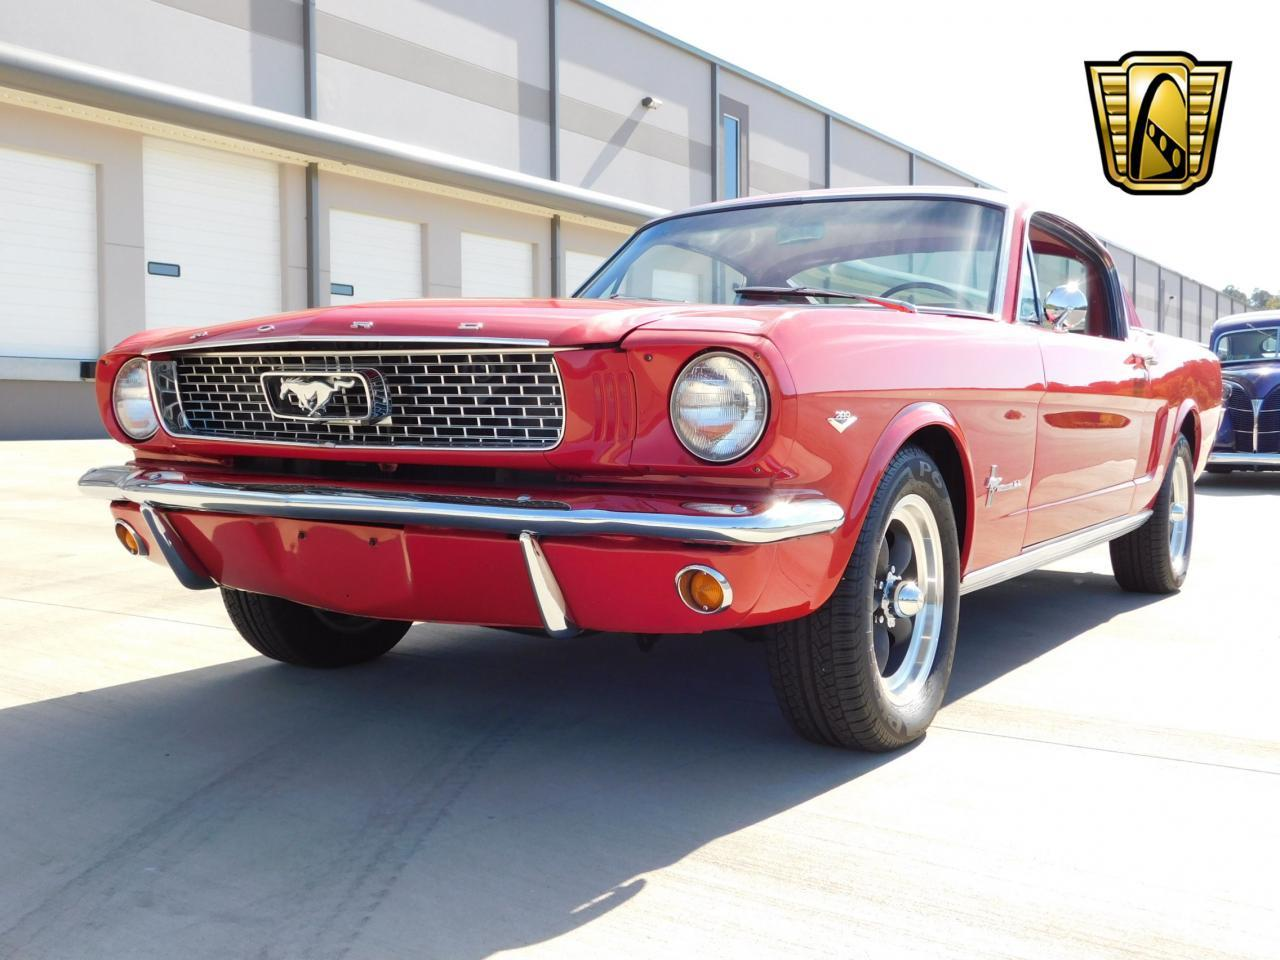 Large Picture of Classic '66 Mustang located in Georgia Offered by Gateway Classic Cars - Atlanta - M8OT